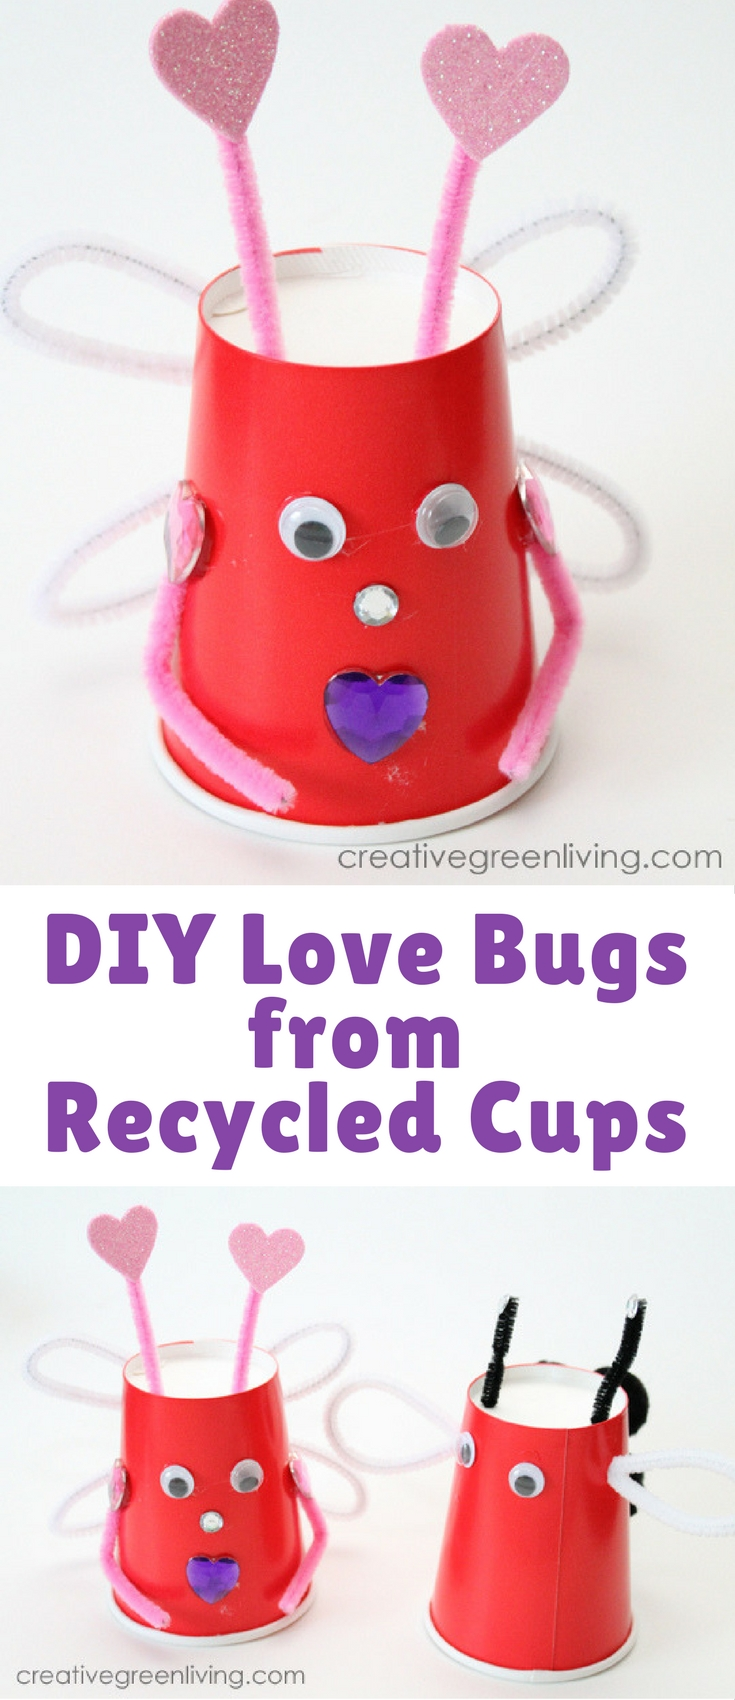 """These are a great """"free choice"""" craft to do with kids - just set out the supplies and let them come up with their own version. I made the """"Queen"""" love bug on the right but my son made a small army of """"ladybugs"""" with big black pom poms on their backs. This is also a great way to use up party supply leftovers!"""